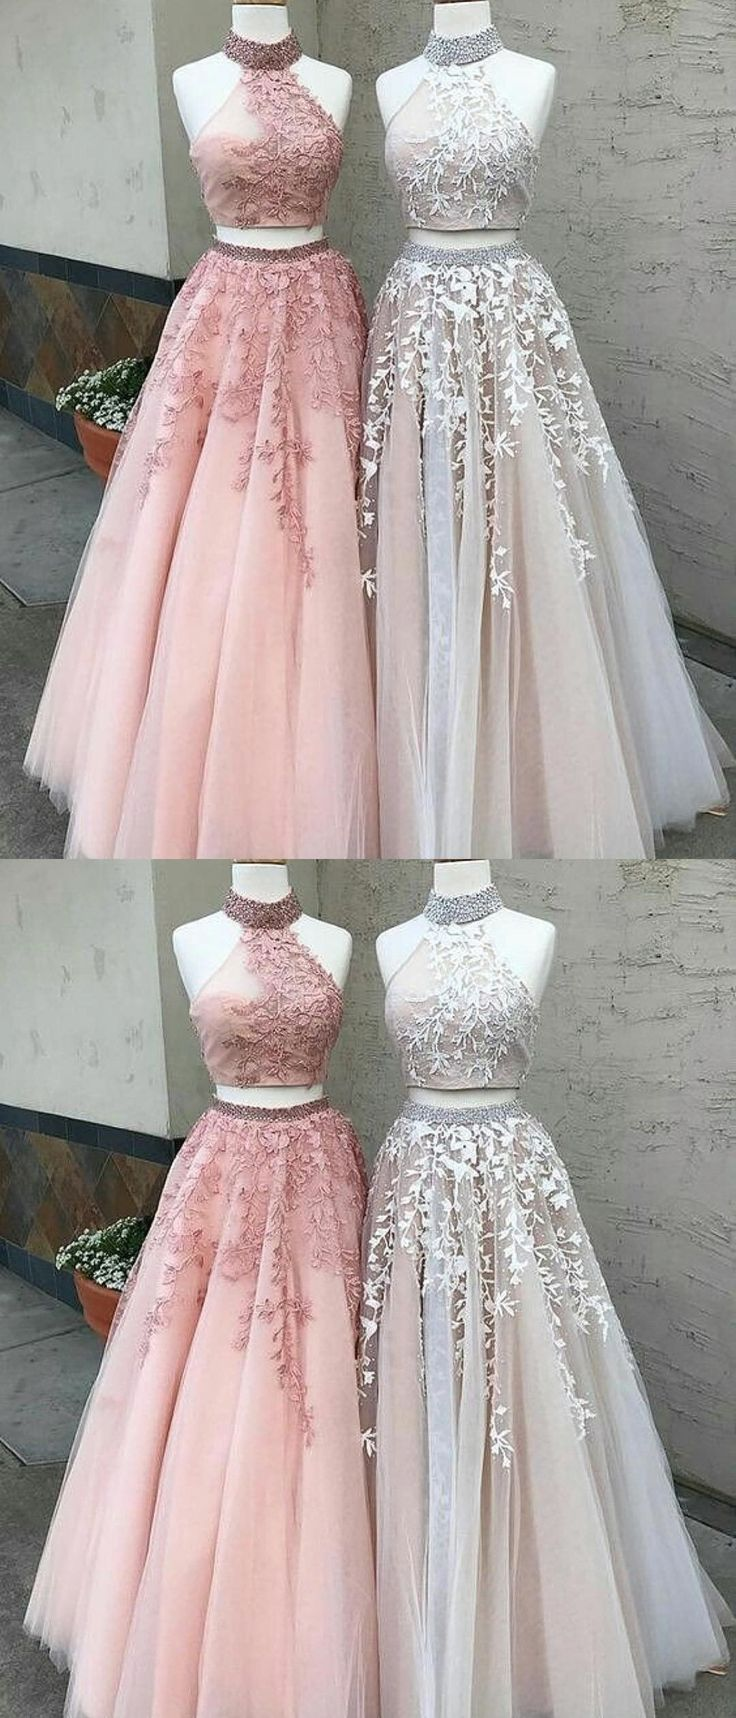 elegant 2 pieces prom party dresses with appliques, pink fashion halter formal evening gowns ,light grey ball gowns. #longpromdresses